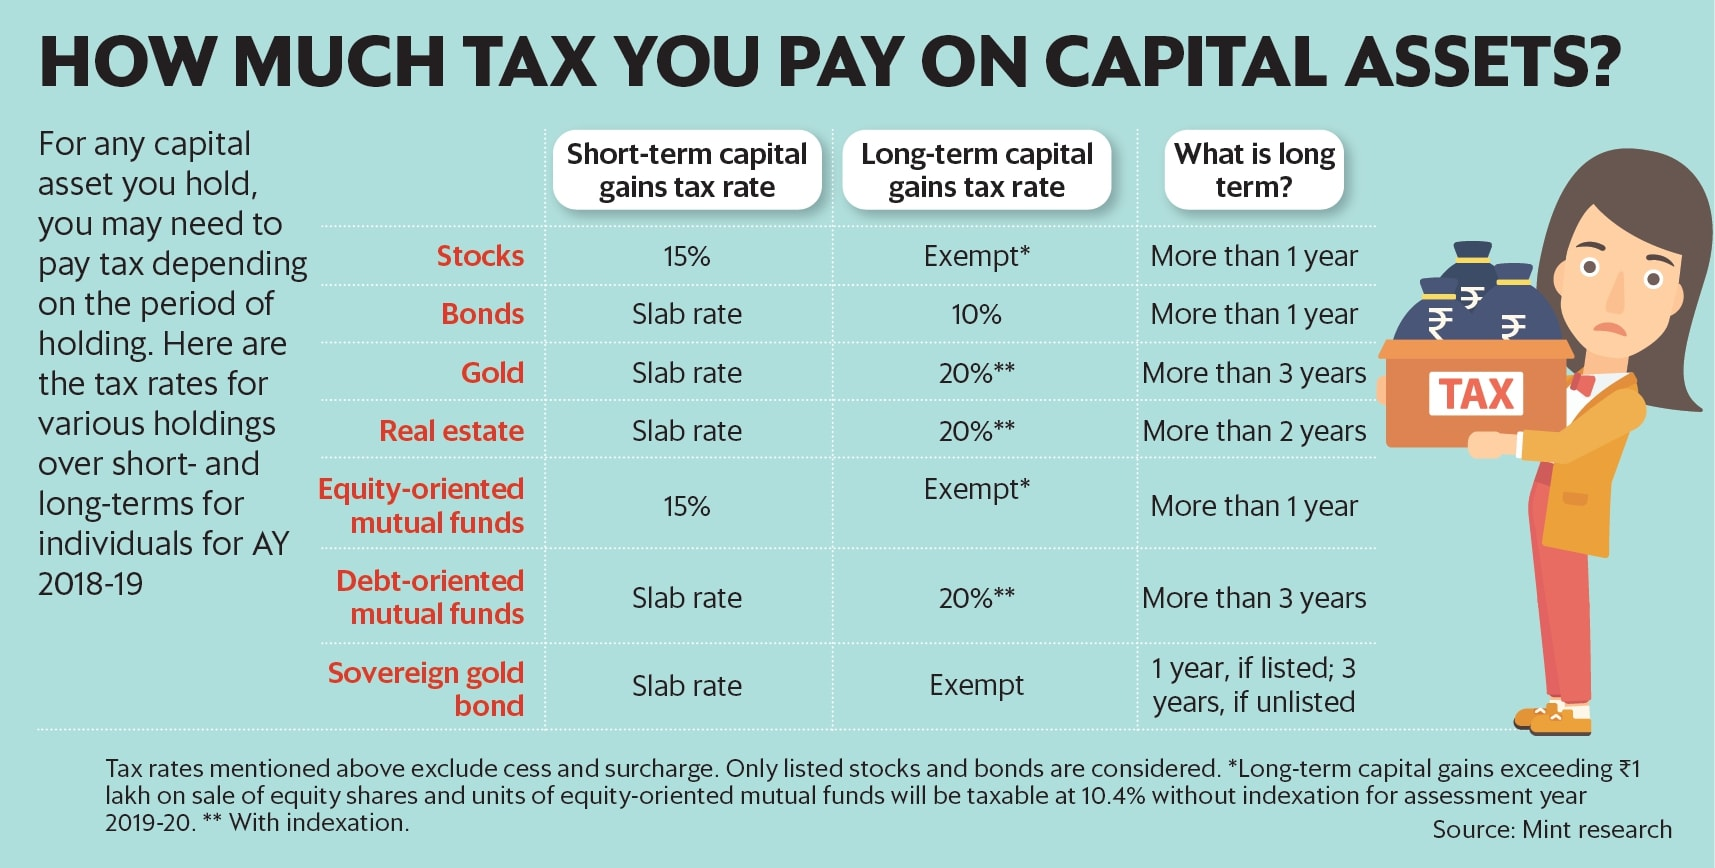 How To Disclose Capital Gains In Your Income Tax Return